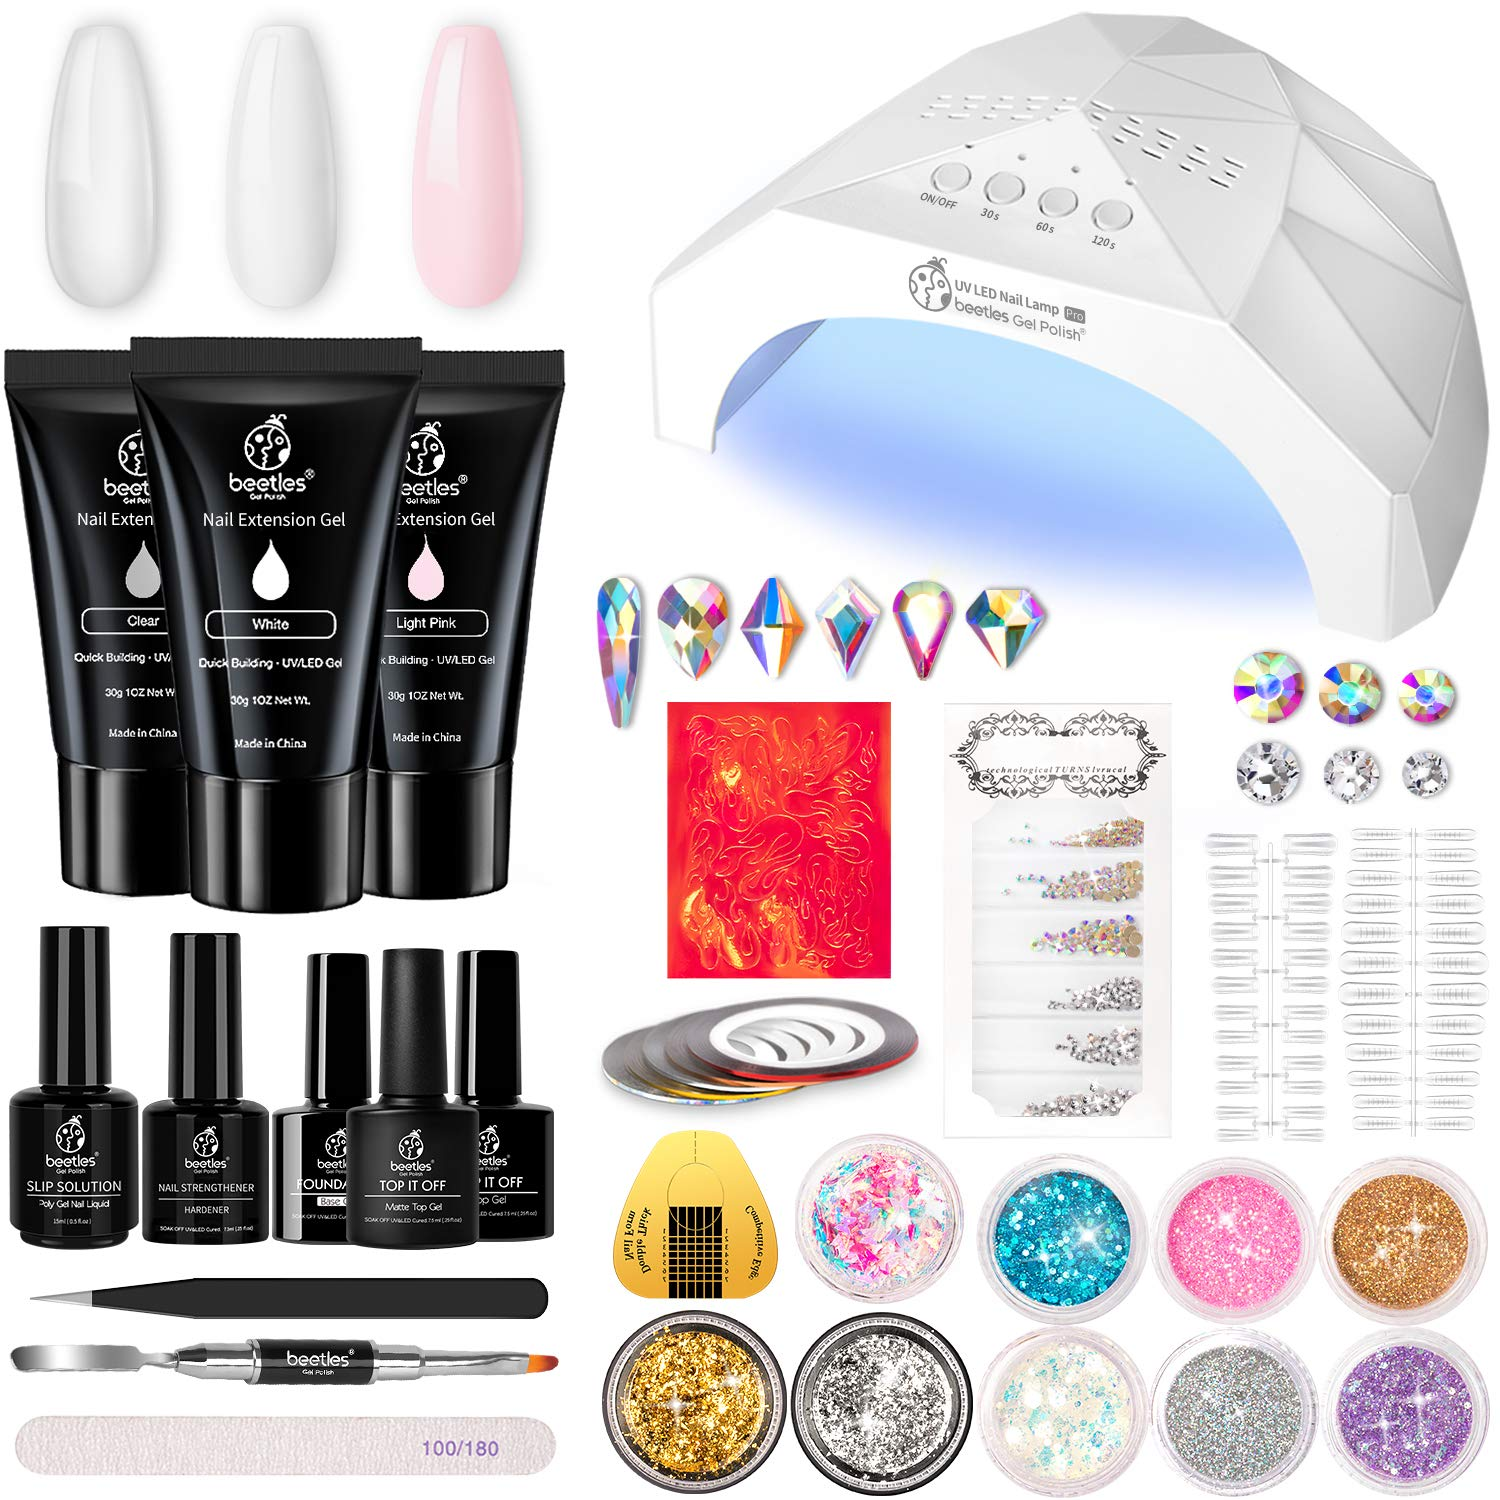 Beetles Poly Gel Extension Nail Kit, 3 Colors Nail Extension Gel with 48W Nail Lamp Slip Solution Nail Strengthener Rhinestone Glitter All In One for Nail Manicure Beginner Starter Kit